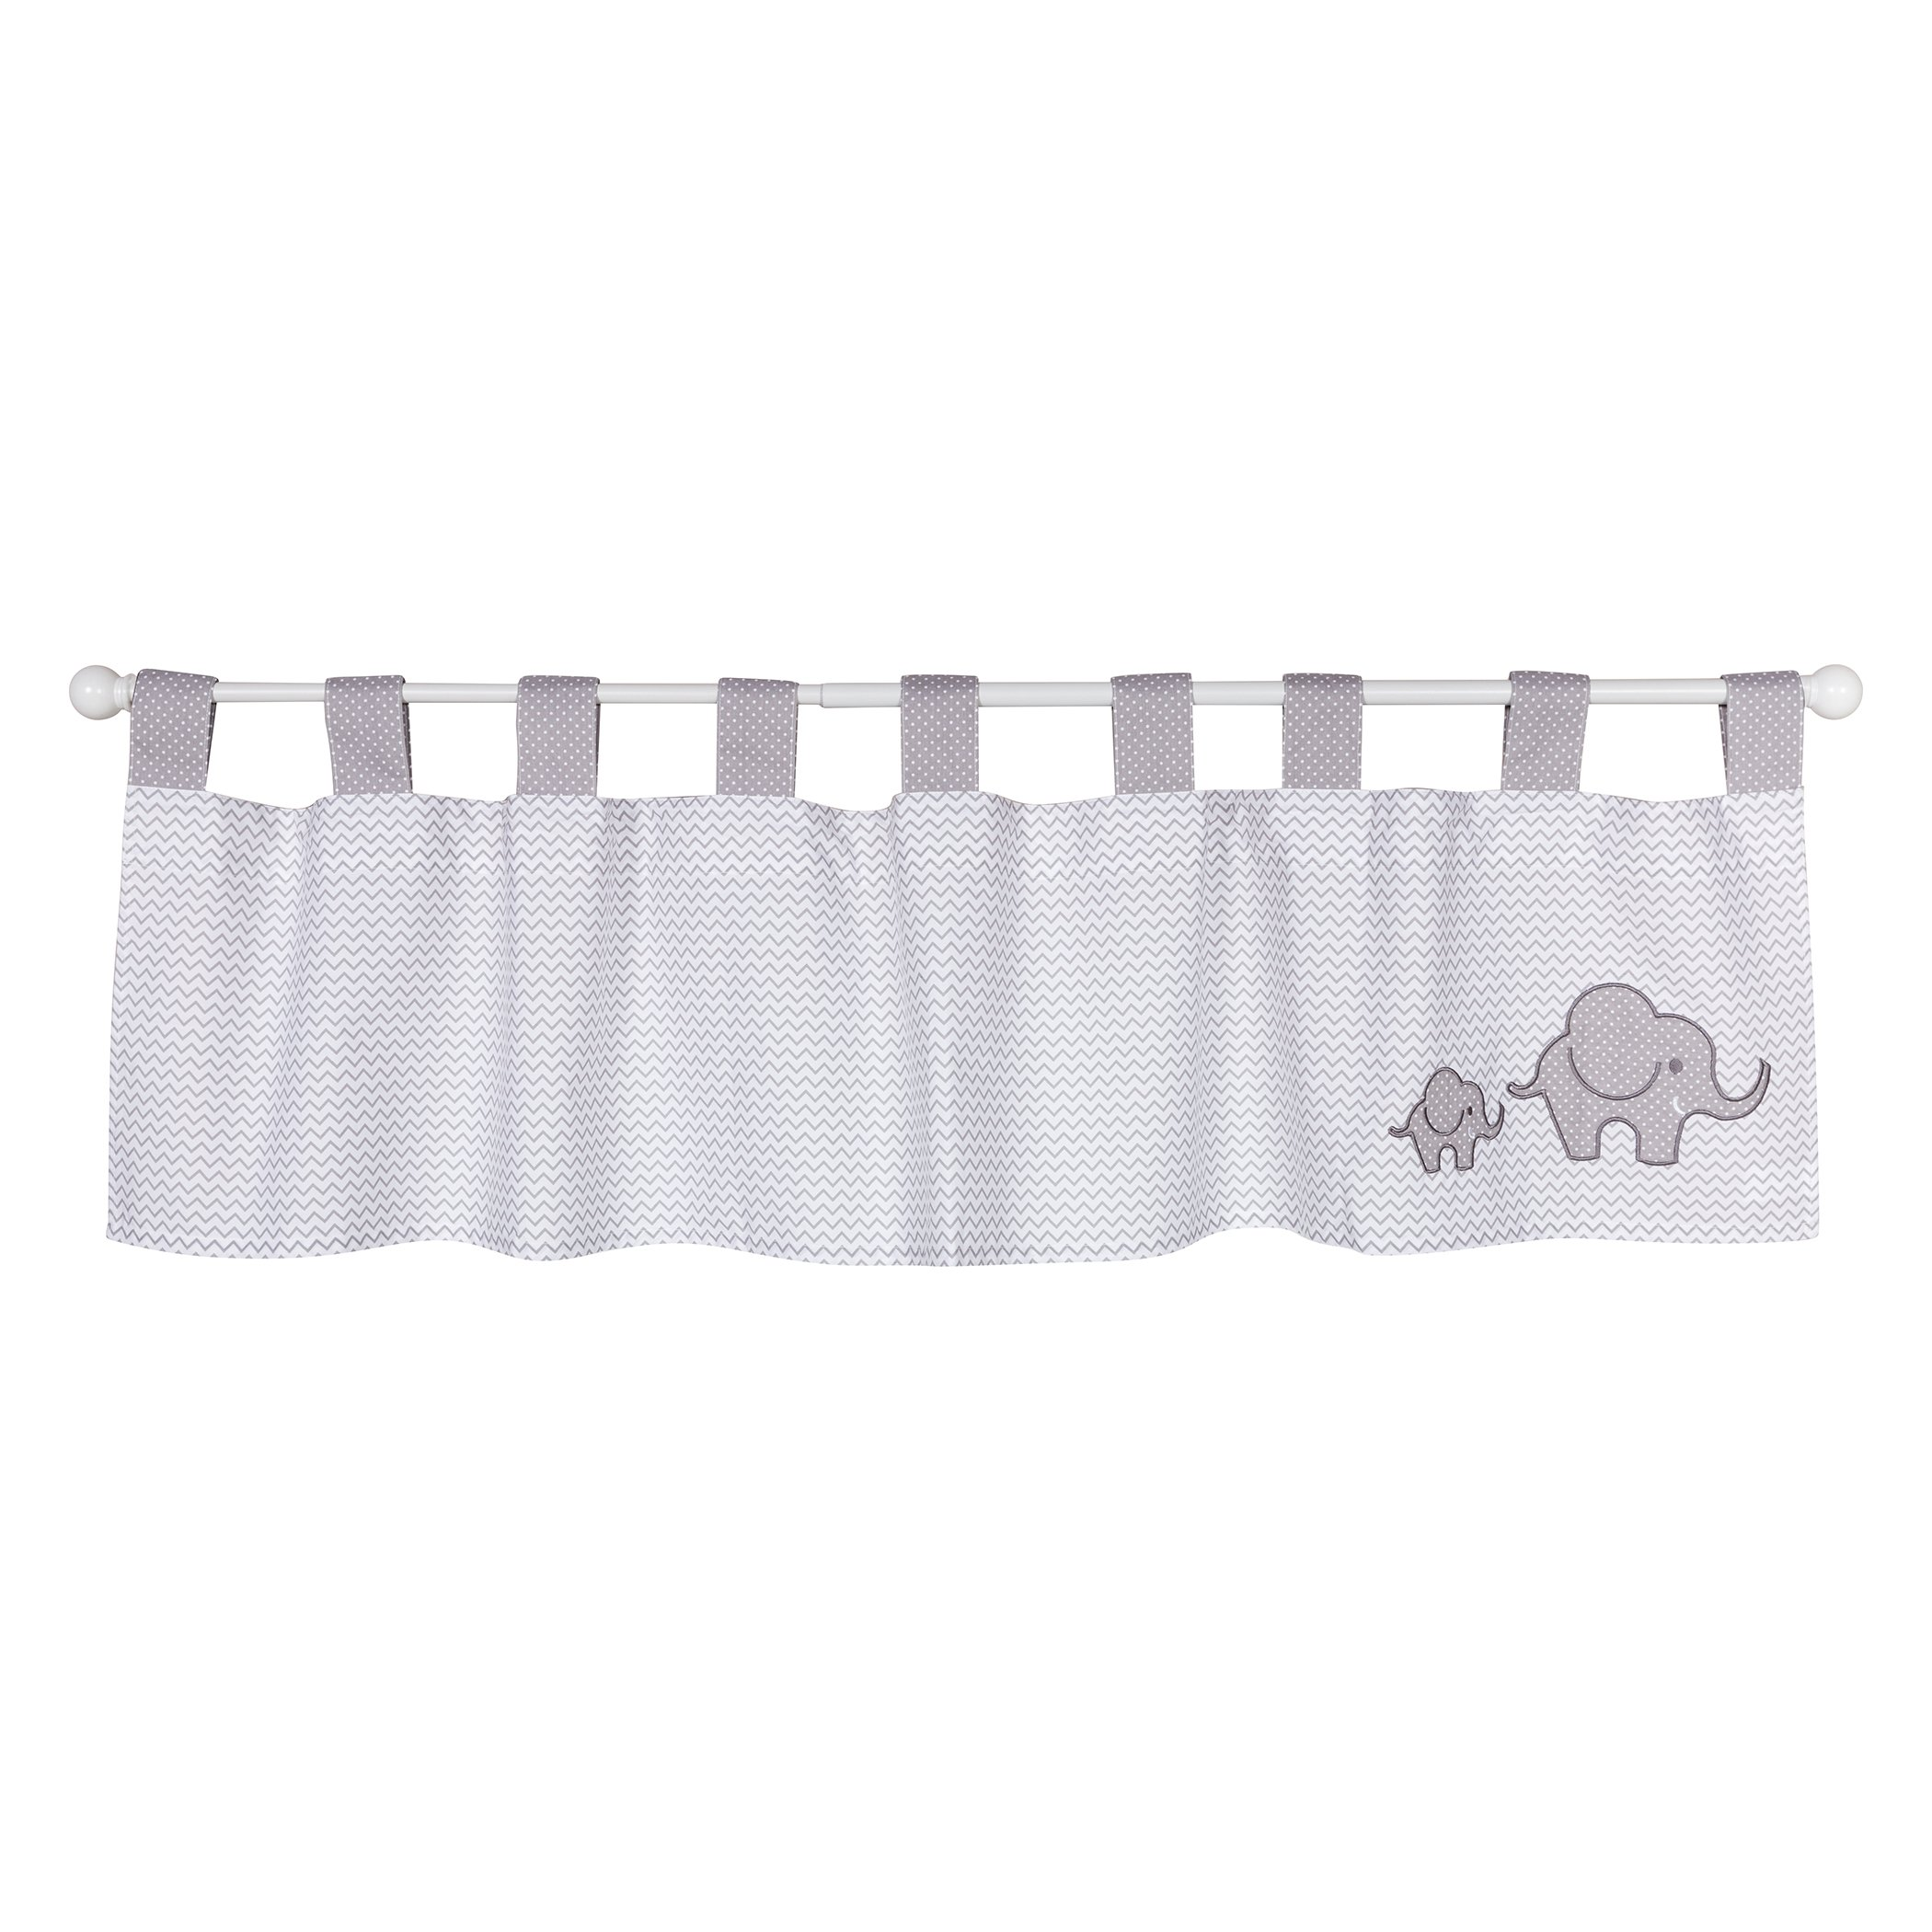 Trend Lab Safari Chevron Window Valance, Gray/White